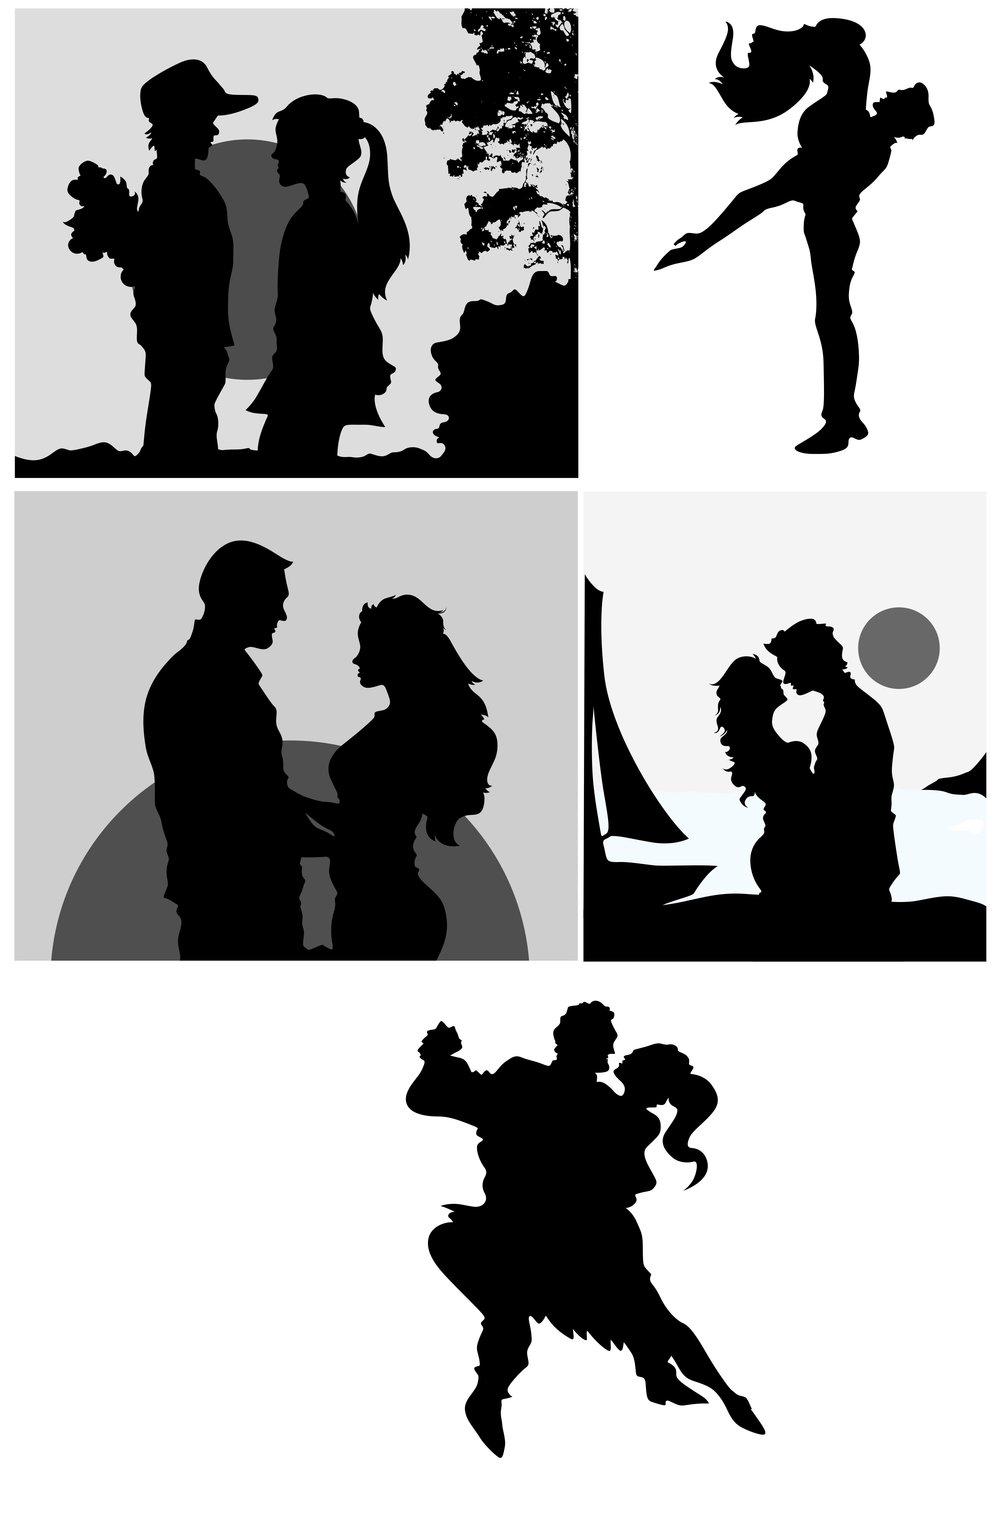 romantic-couples-silhouettes_f1LkwJt__L.jpg